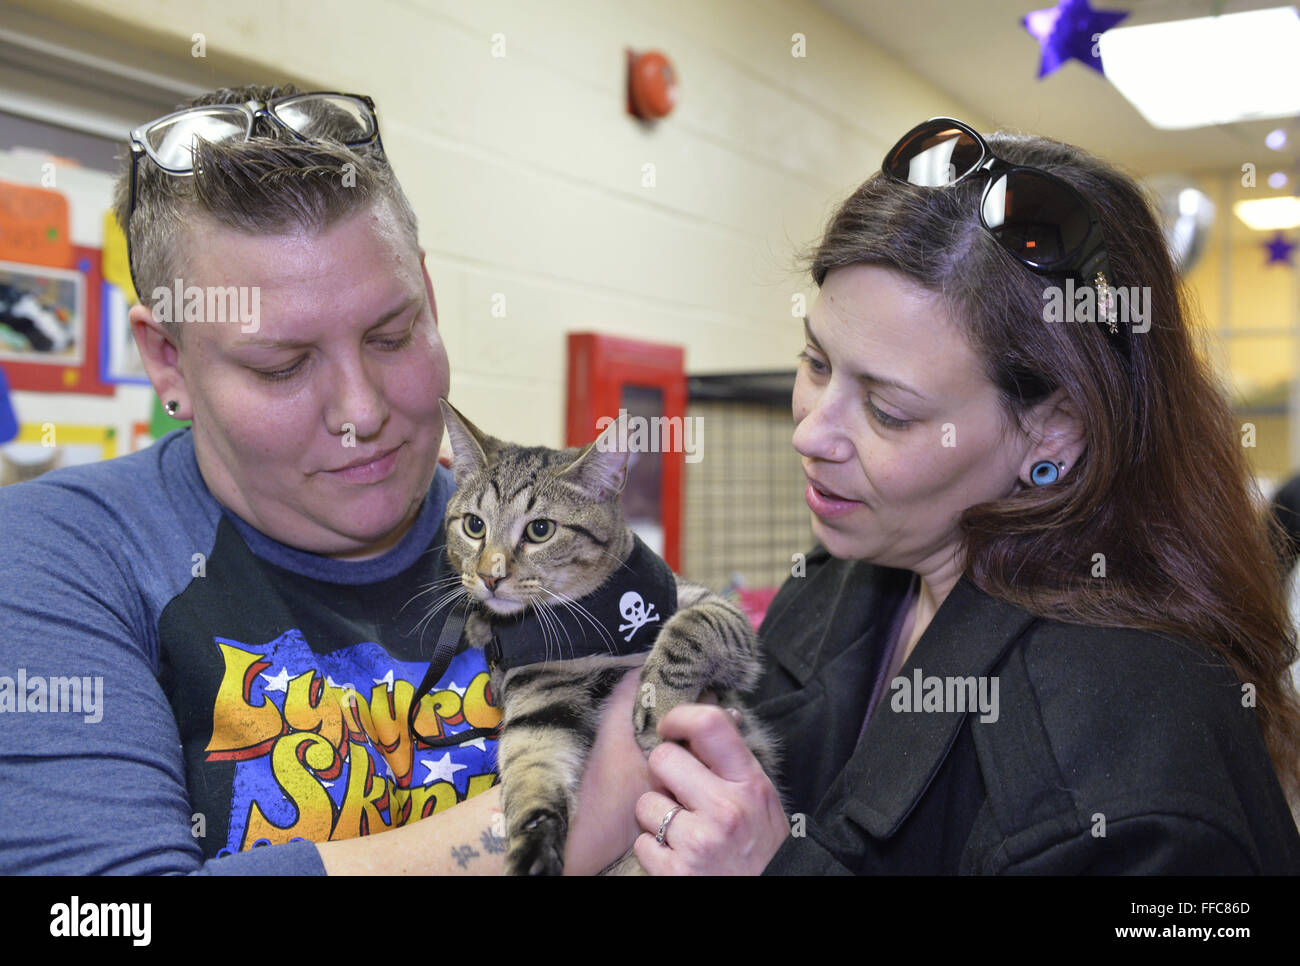 Wantagh, New York, USA. 7th Feb, 2016. Tiger the tabby cat, who was one of the team players in the Hallmark Channel - Stock Image